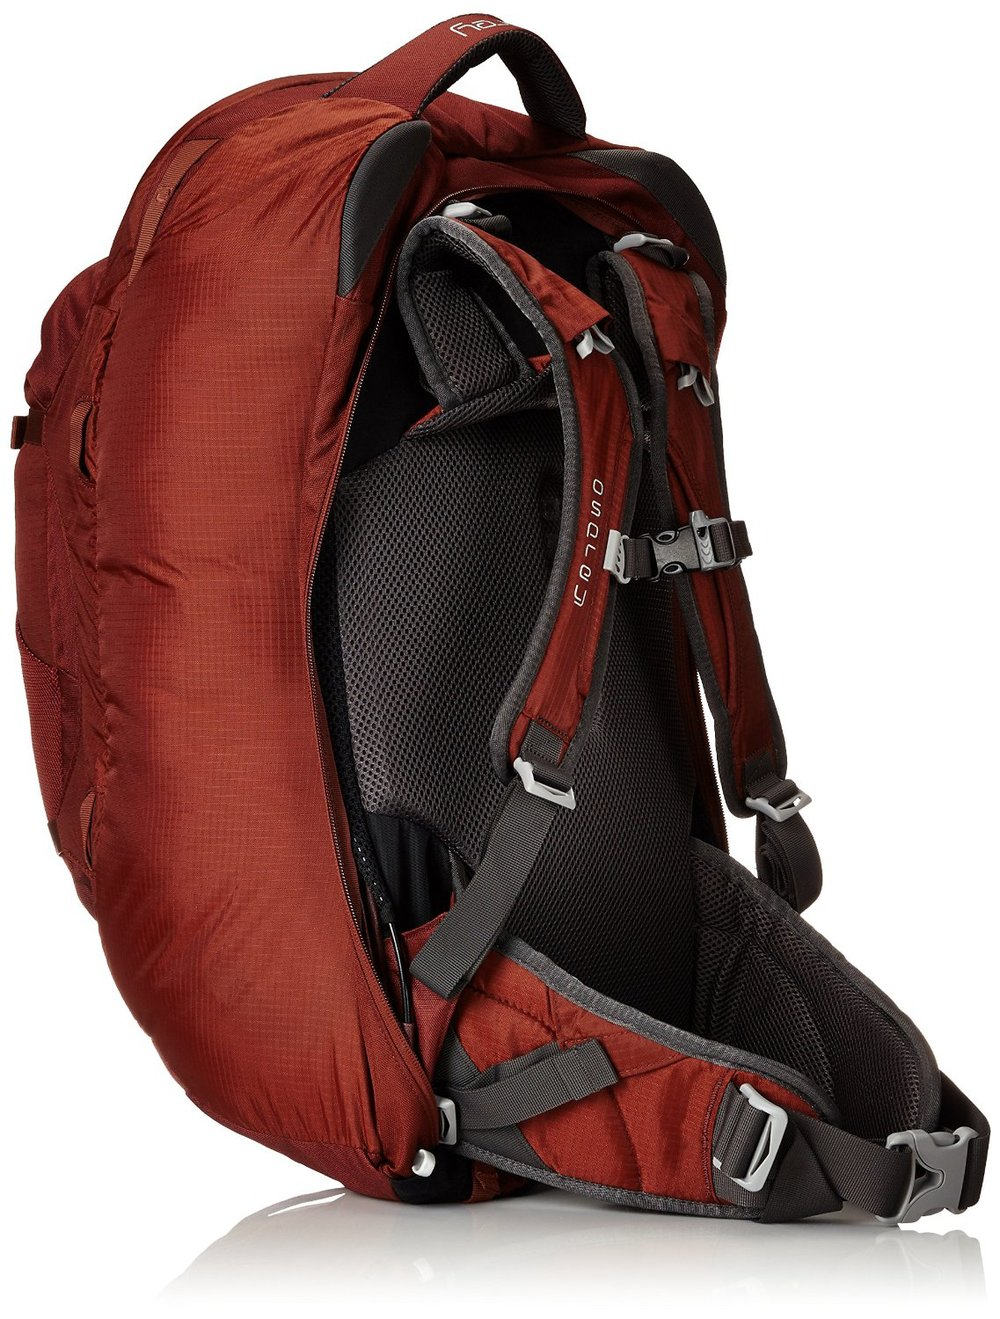 Osprey - Farpoint 55 Travel Backpack